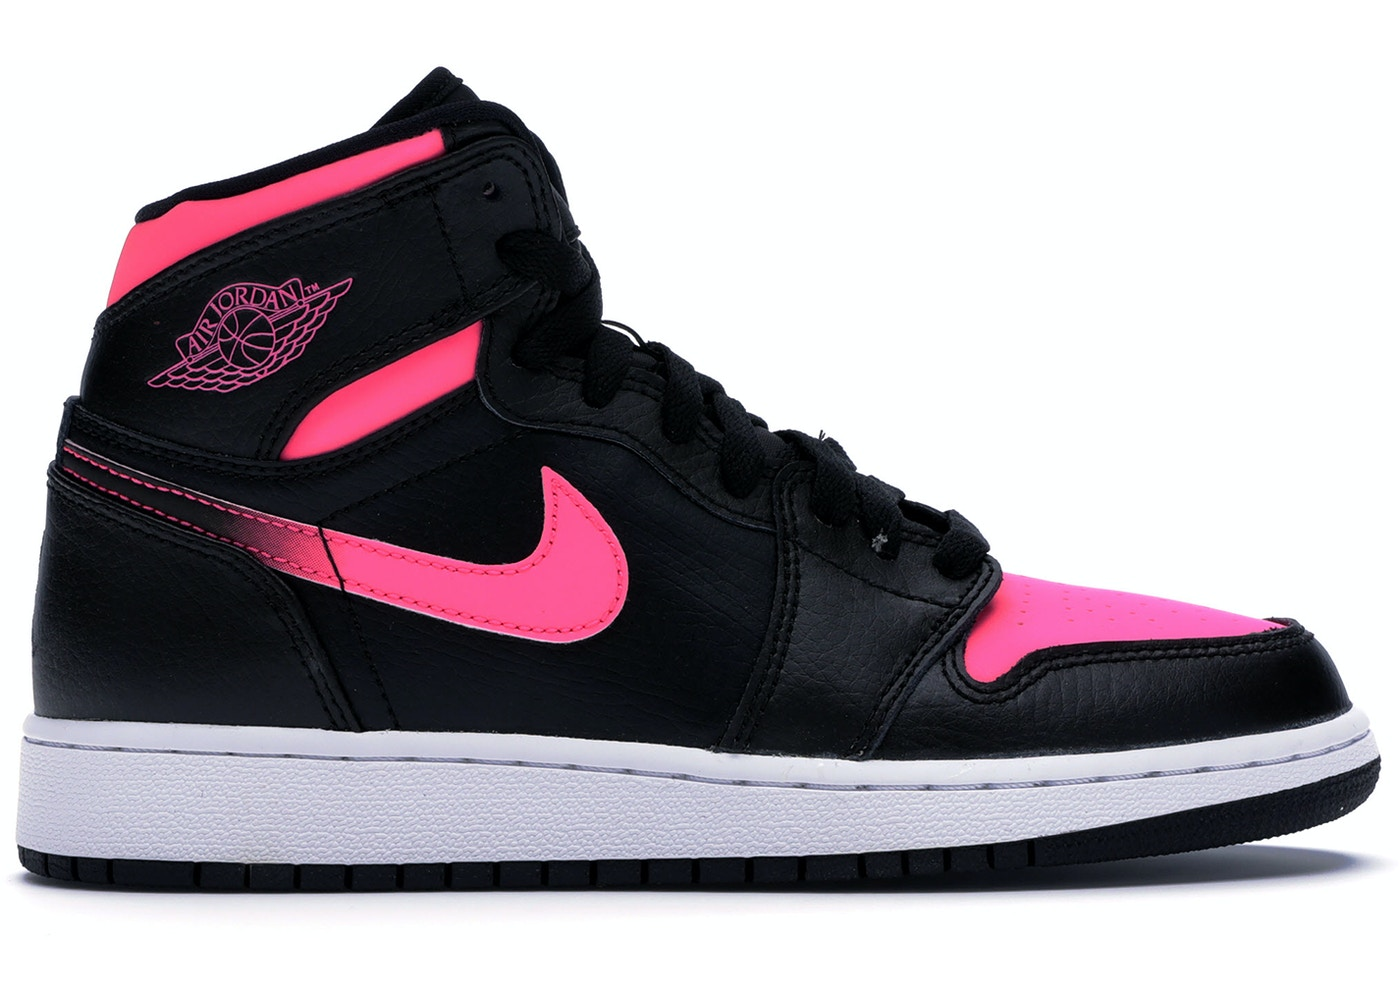 the latest 5b148 af237 Jordan 1 Retro High Black Hyper Pink (GS) - 332148-019